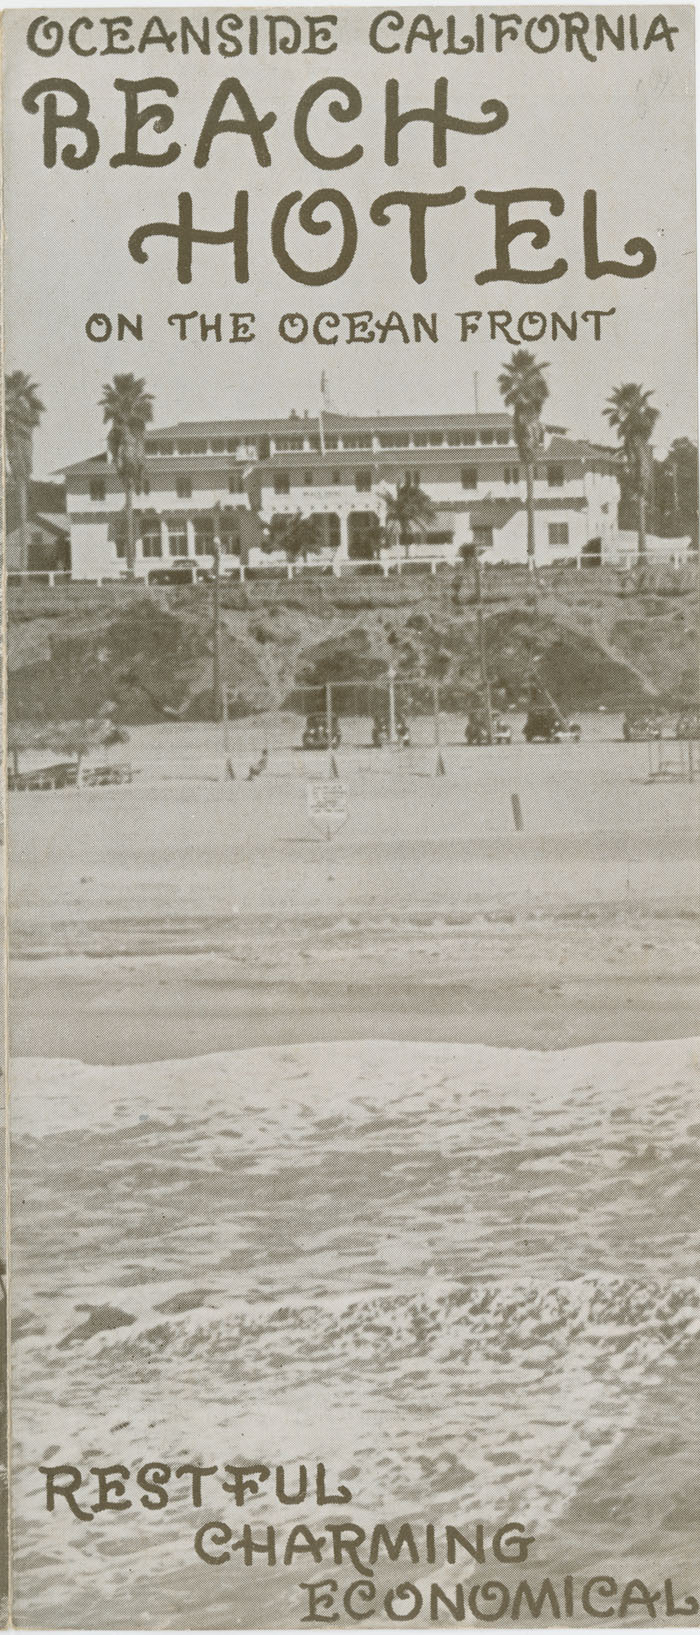 Beach Hotel on the ocean front, 1935